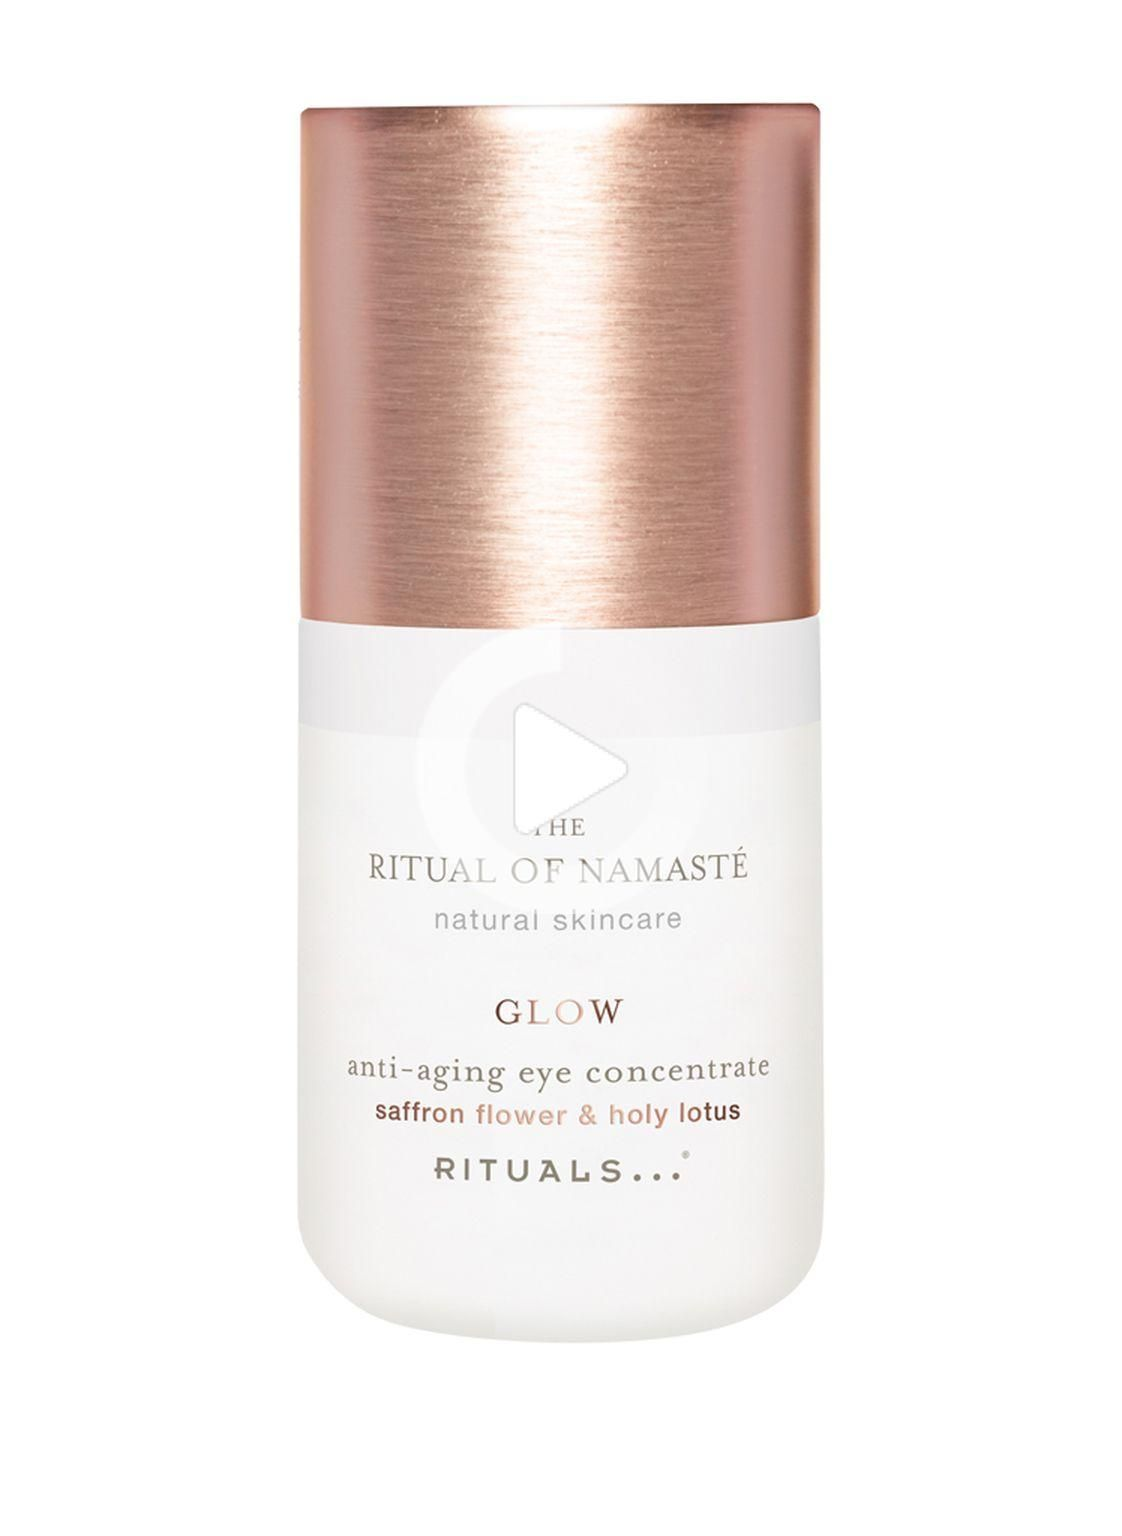 Bring out your inner glow with the help of this eye concentrate from The Ritual of Namasté. Fight the first signs of skin aging and crow's feet as well as deep wrinkles with an intensive moisture boost. Like the rest of the Glow product line, the eye concentrate also contains the natural ingredient saffron, which is known for its antioxidant anti-wrinkle effect. #weddinghairstyles